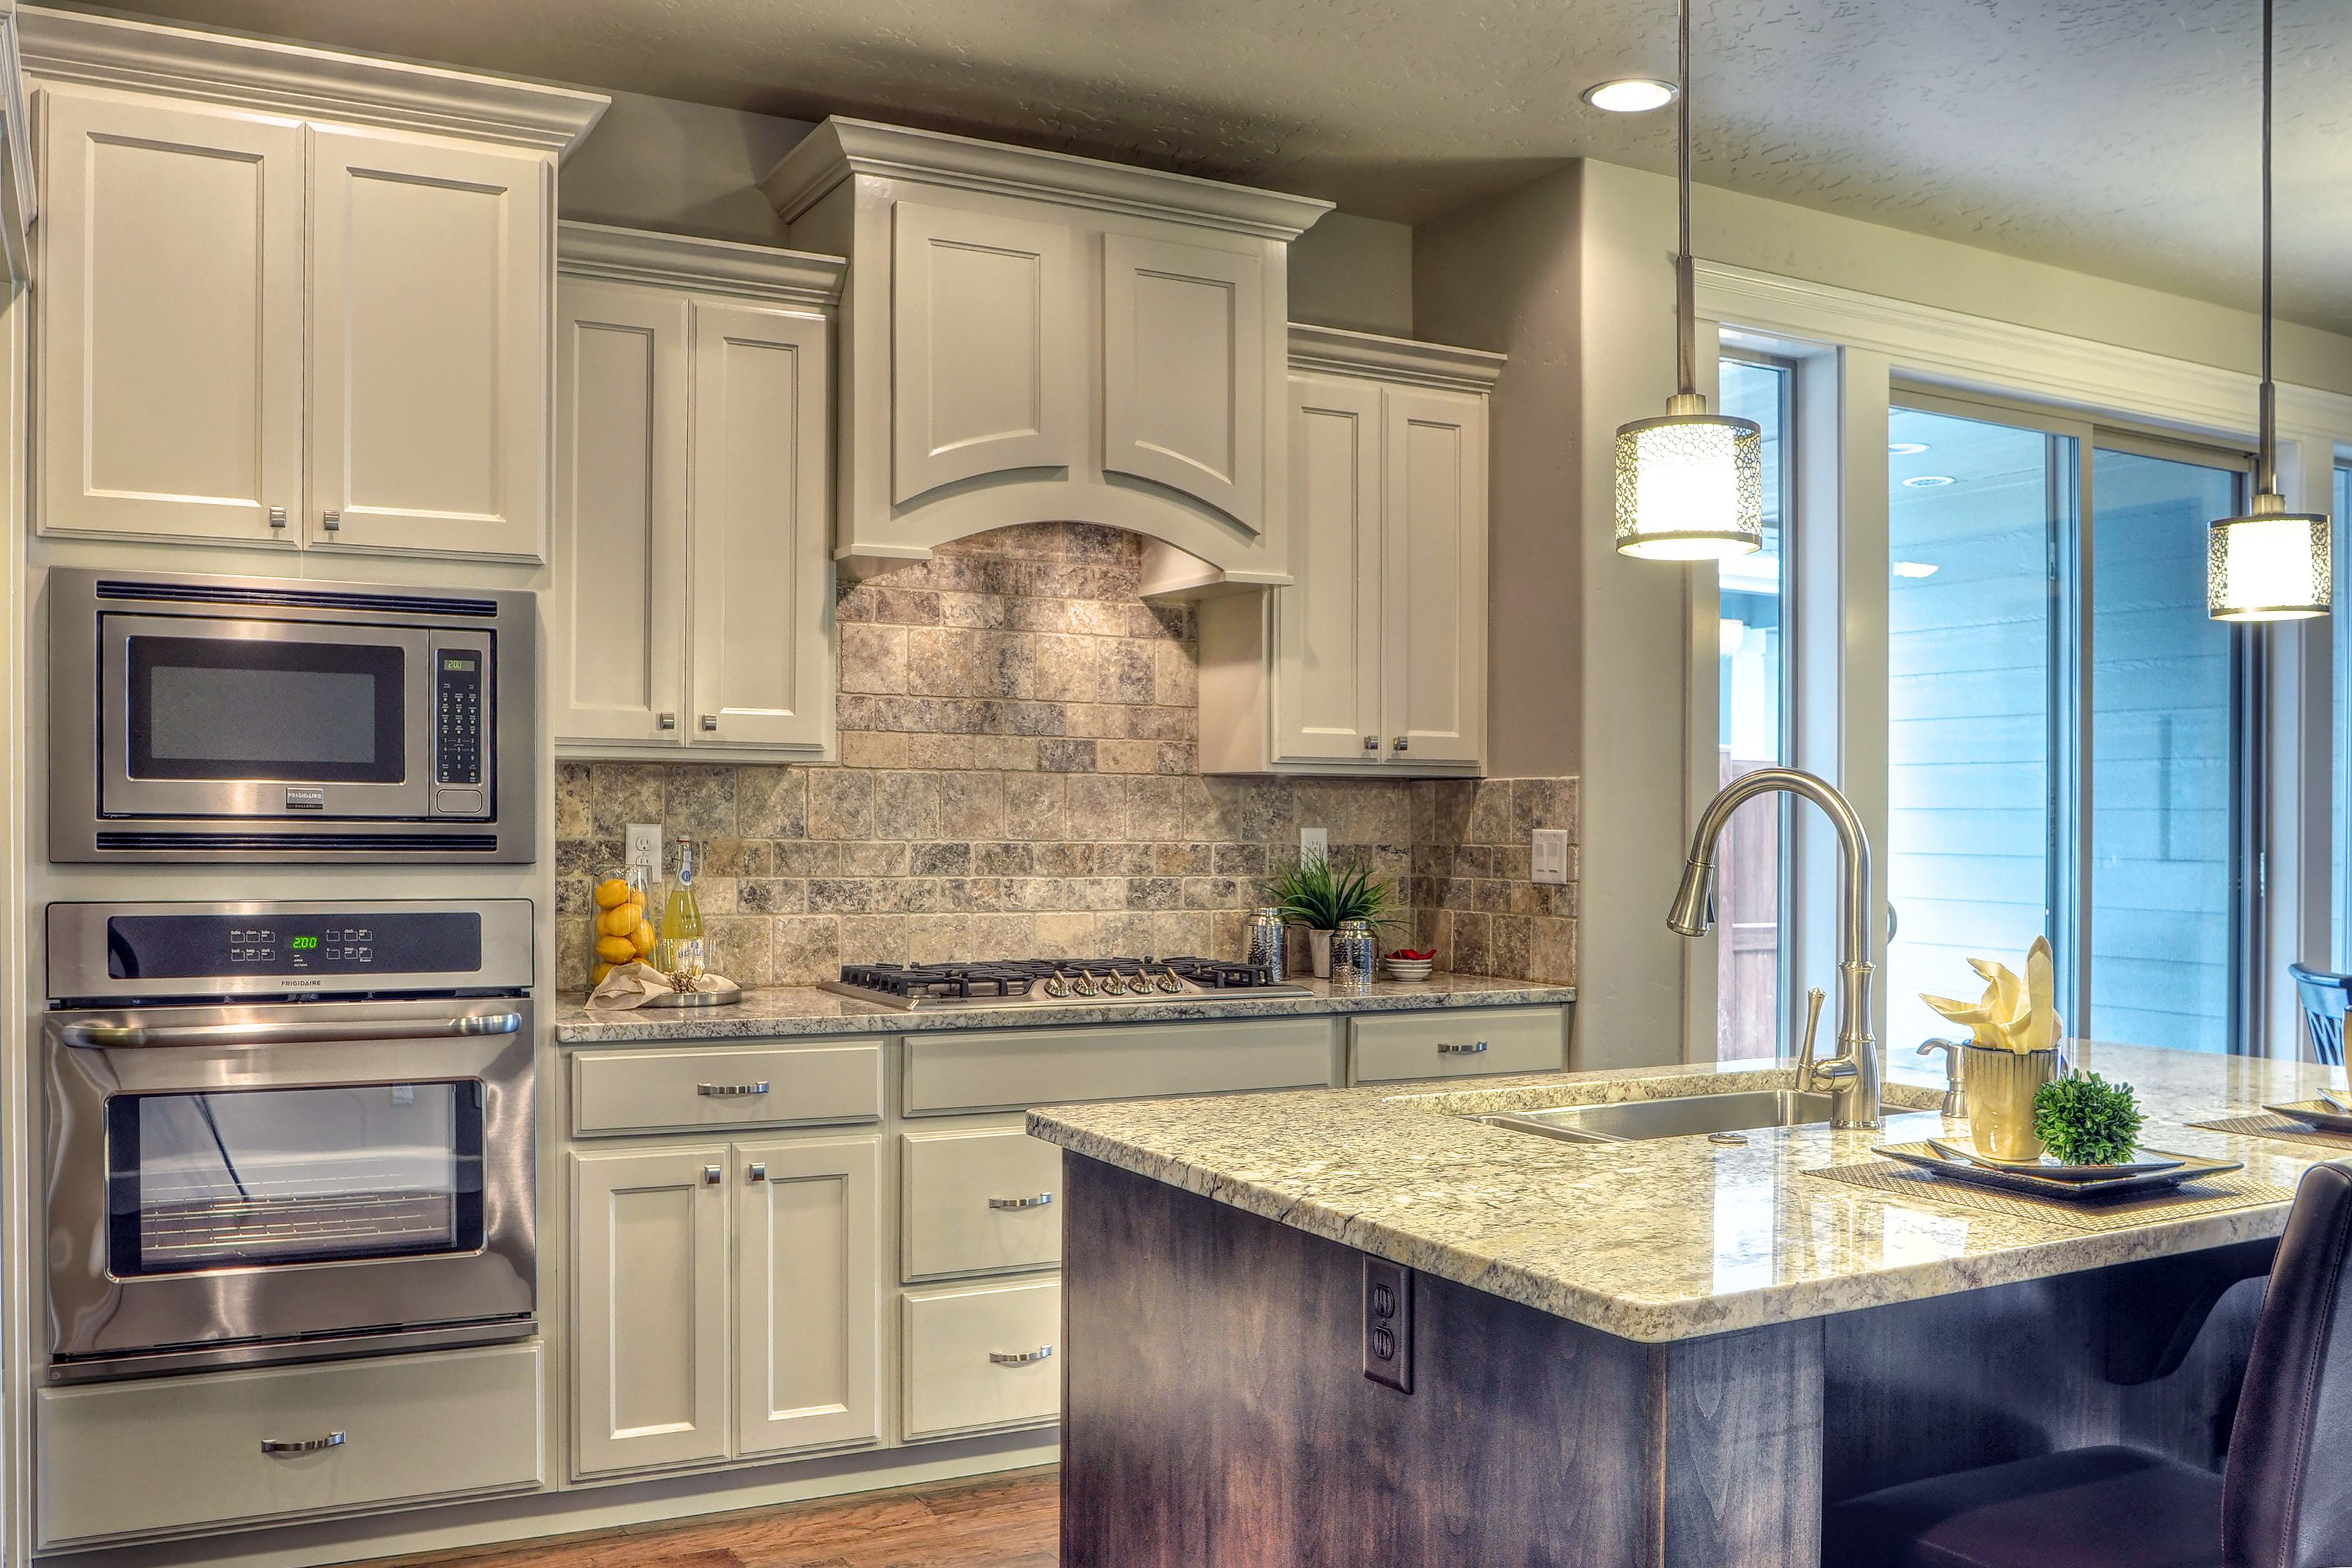 sherwin williams snowbound painted cabinets make the kitchen feel bigger and elegant. Interior Design Ideas. Home Design Ideas